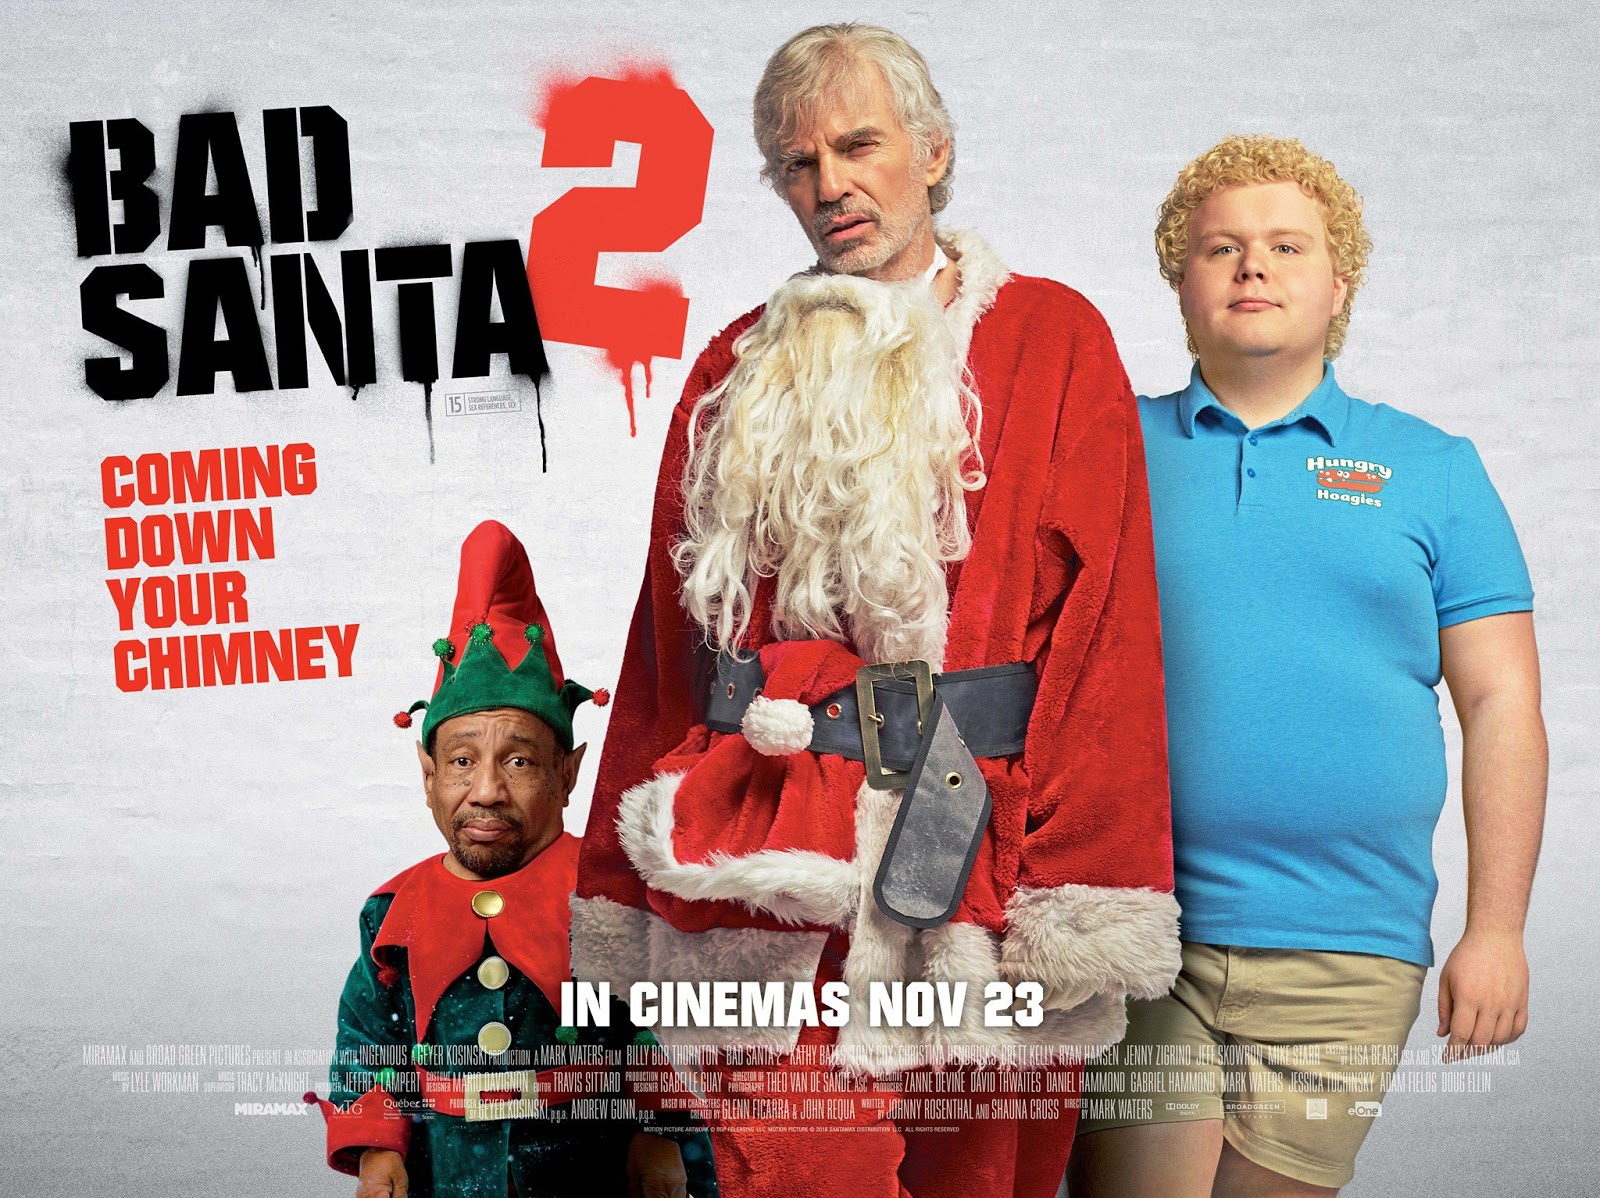 bad santa 2 movie review - Christmas Pictures With Santa 2